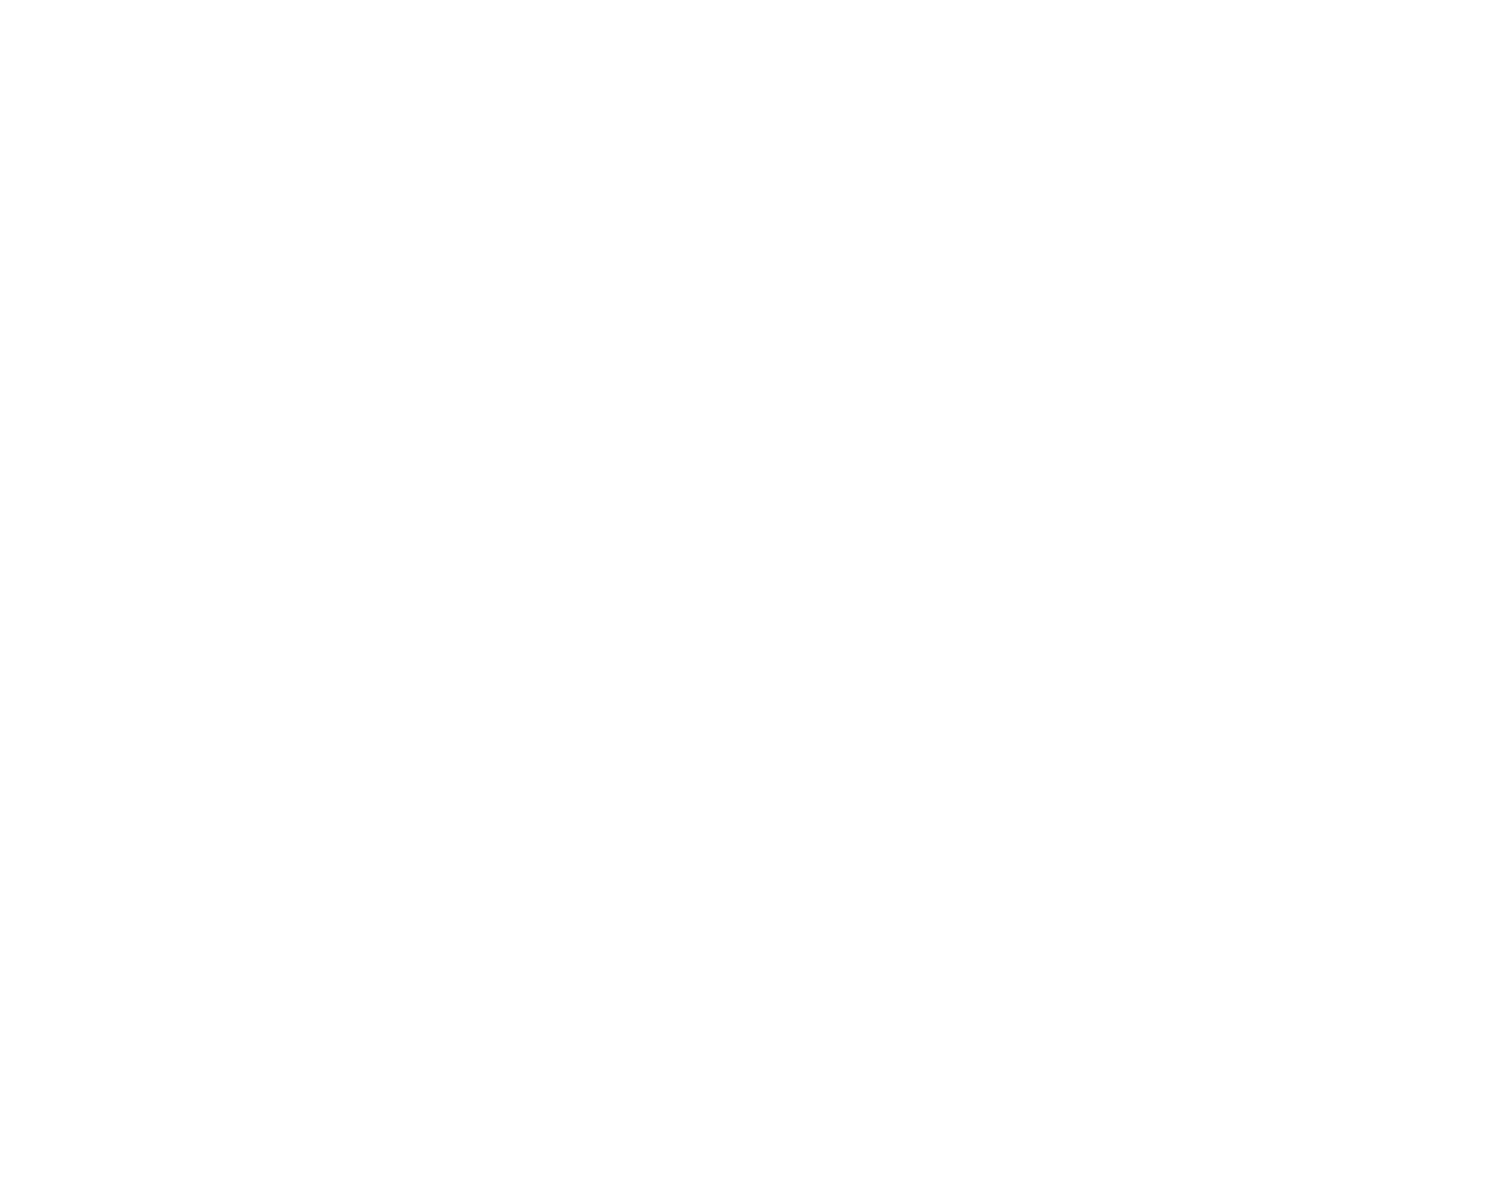 Towne Dental Centre